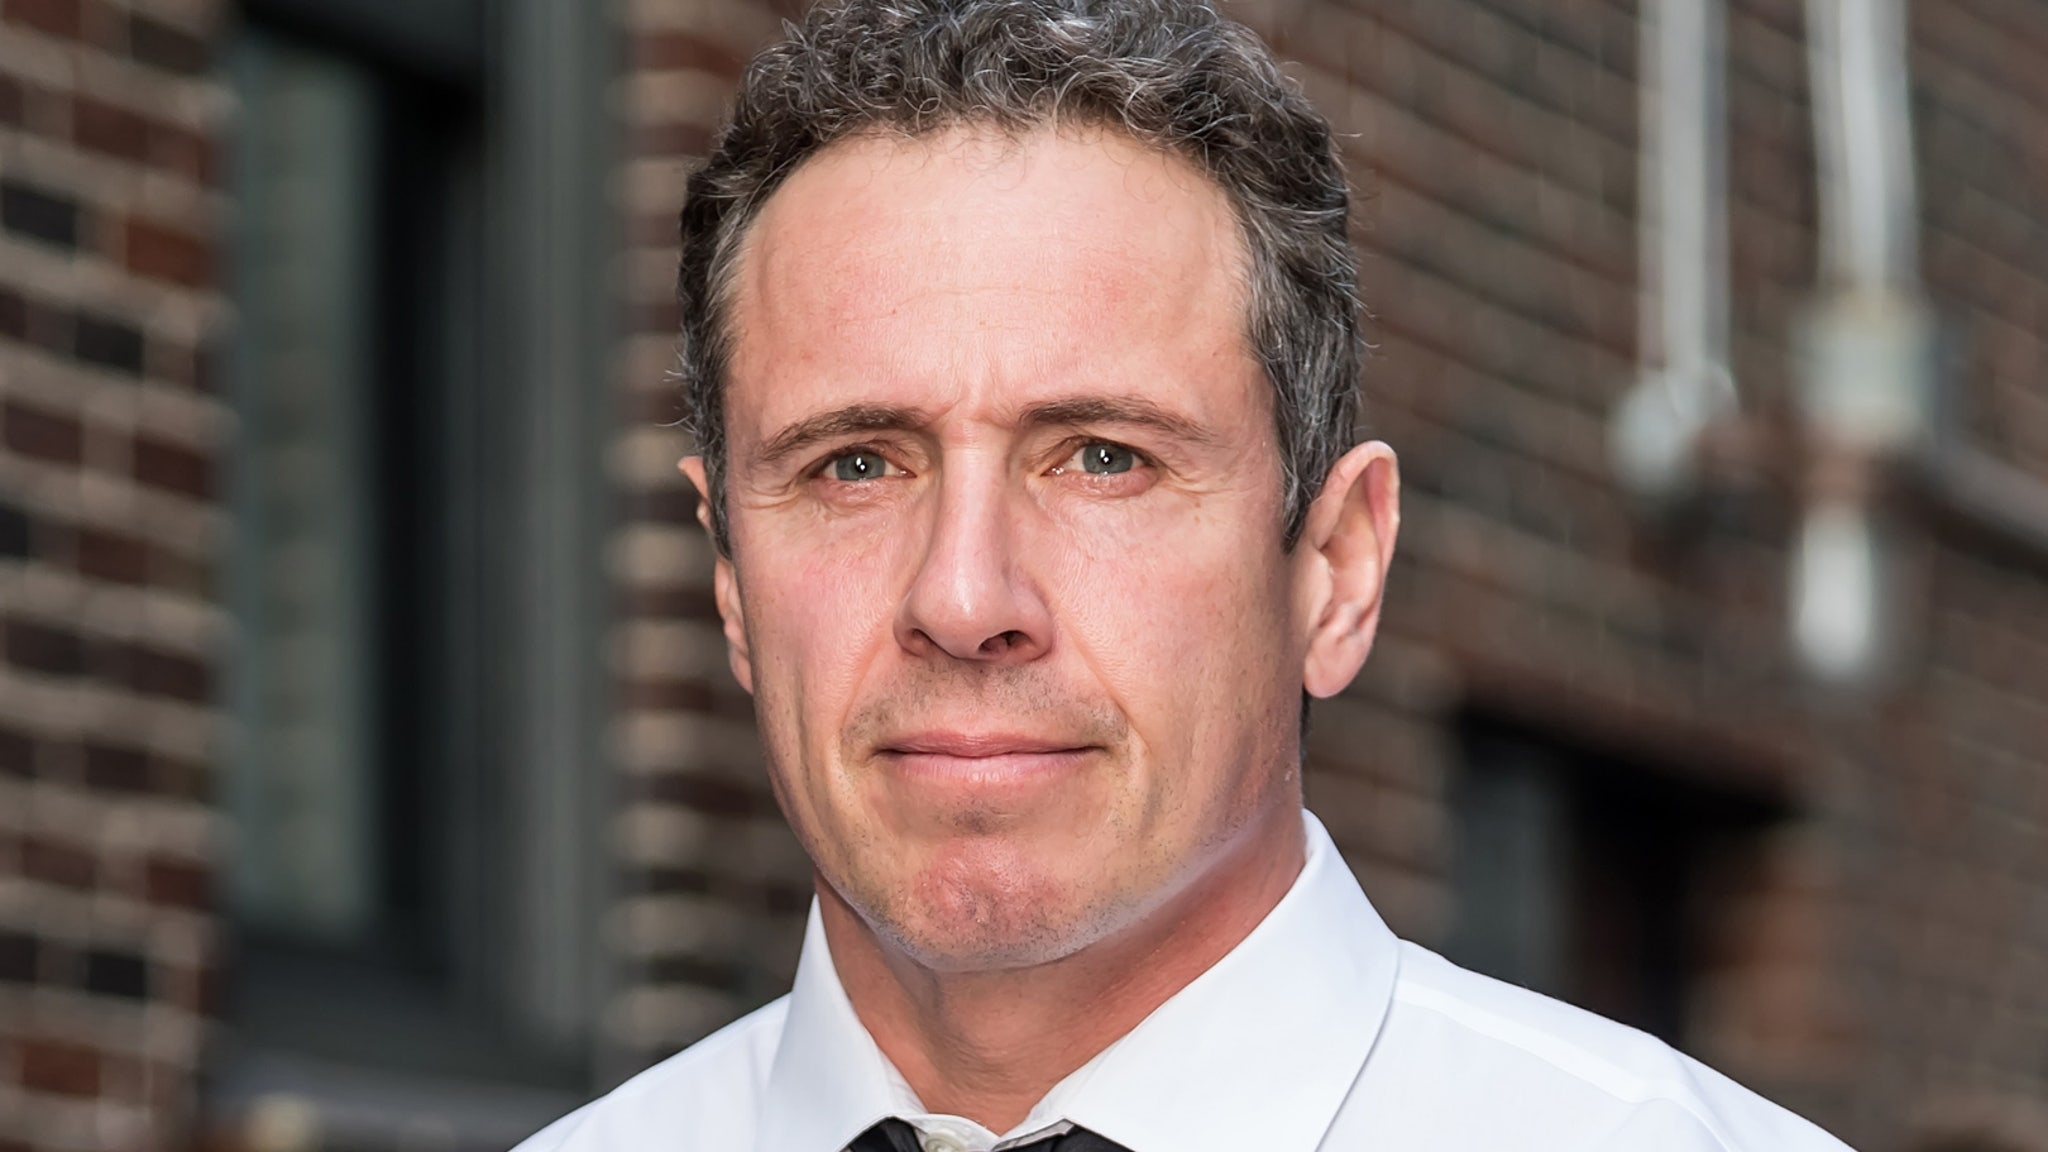 Chris Cuomo Challenges Critic to 'Name One' Example of Him Showing Bias, Doesn't Go Well - TooFab